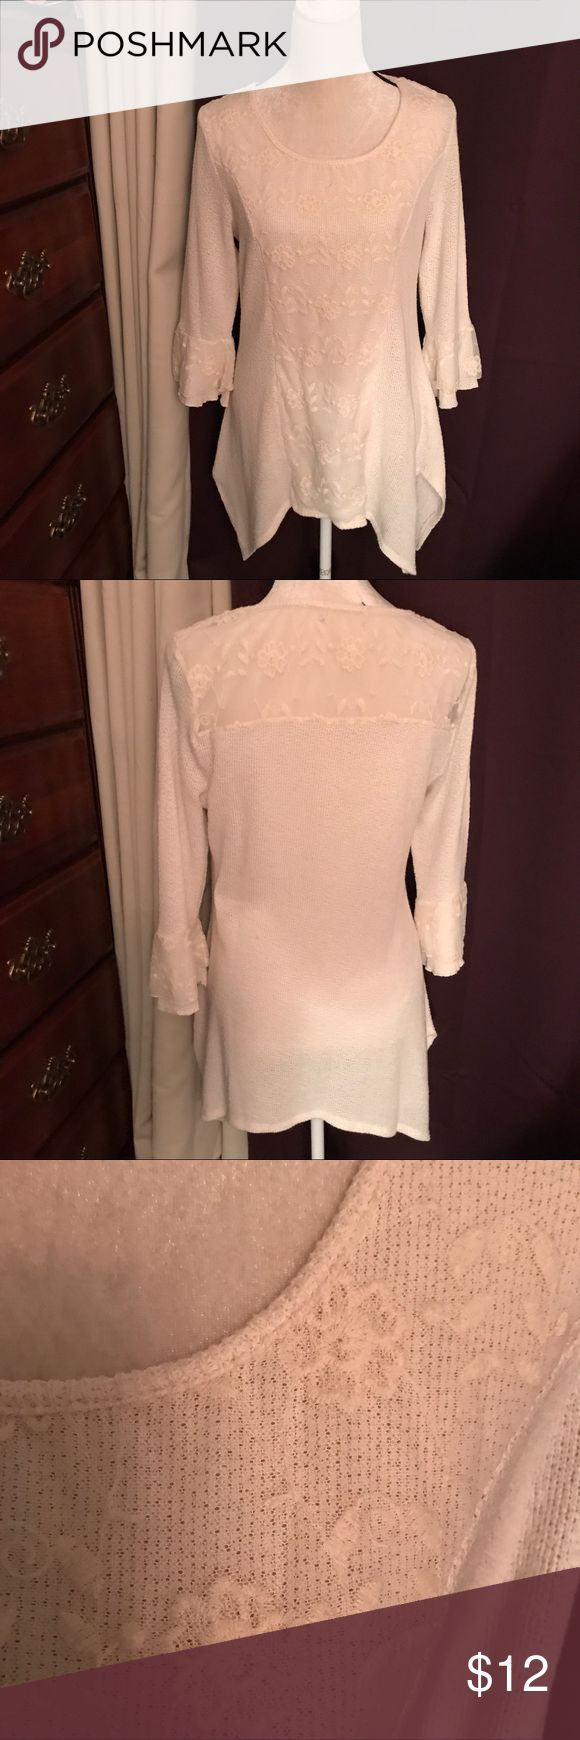 "Cream colored top Cream colored top, very cozy warm, has a lace panel overlay in the front, and lace at the back top. Unk name brand, it was purchased at Cracker Barrel gift shop. The neck tag was removed, but no damage🎀 It's been gently worn🎀 30"" long, size Medium  8-10. Tops Tunics"